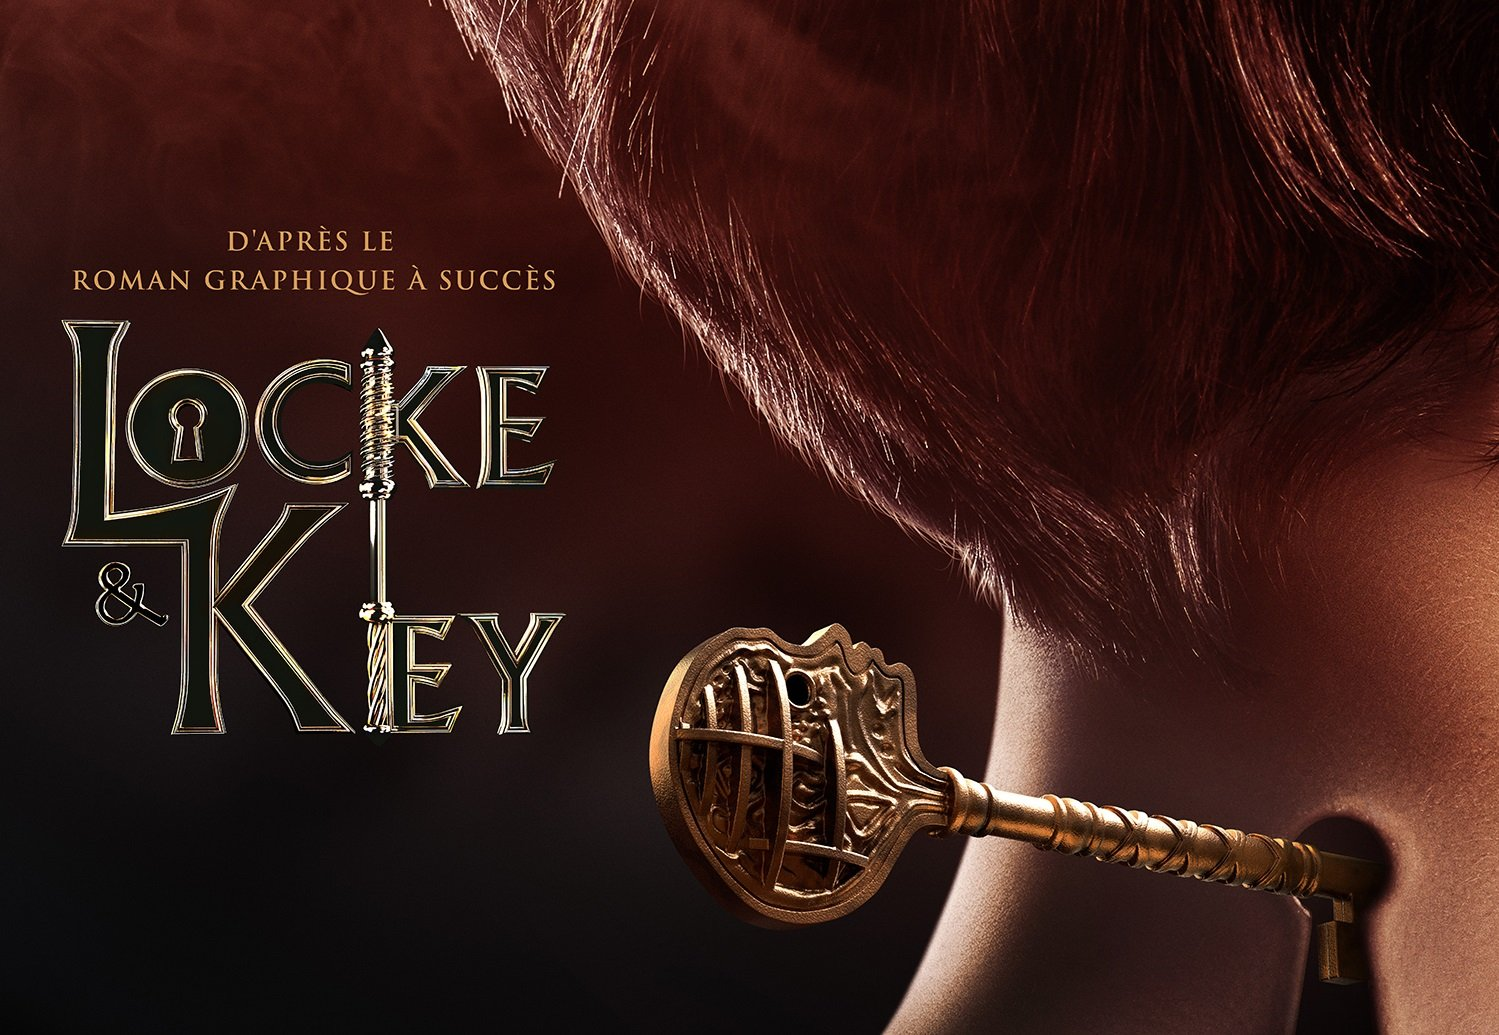 3 bonnes raisons de regarder Locke and Key